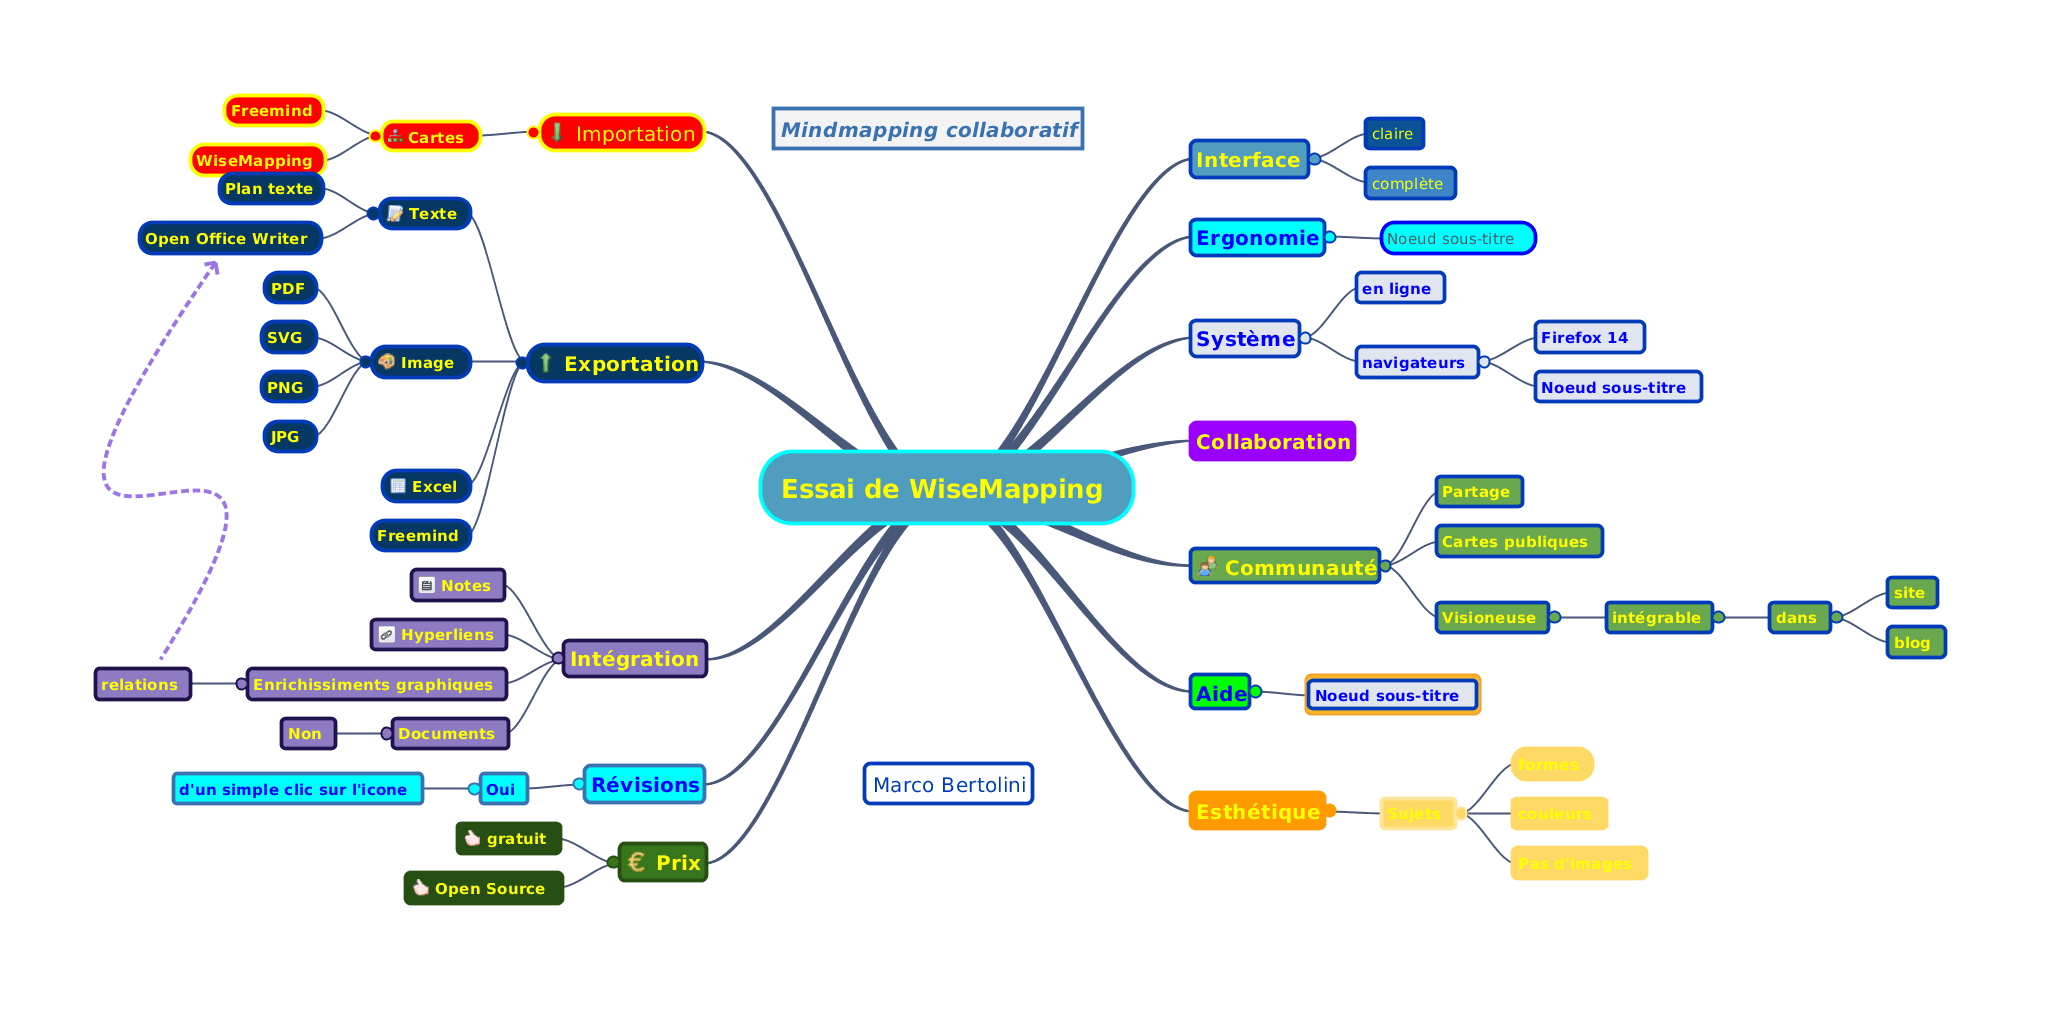 Telechargement Libre Office Gratuit Wisemapping Du Mindmapping Collaboratif Gratuit Et Open